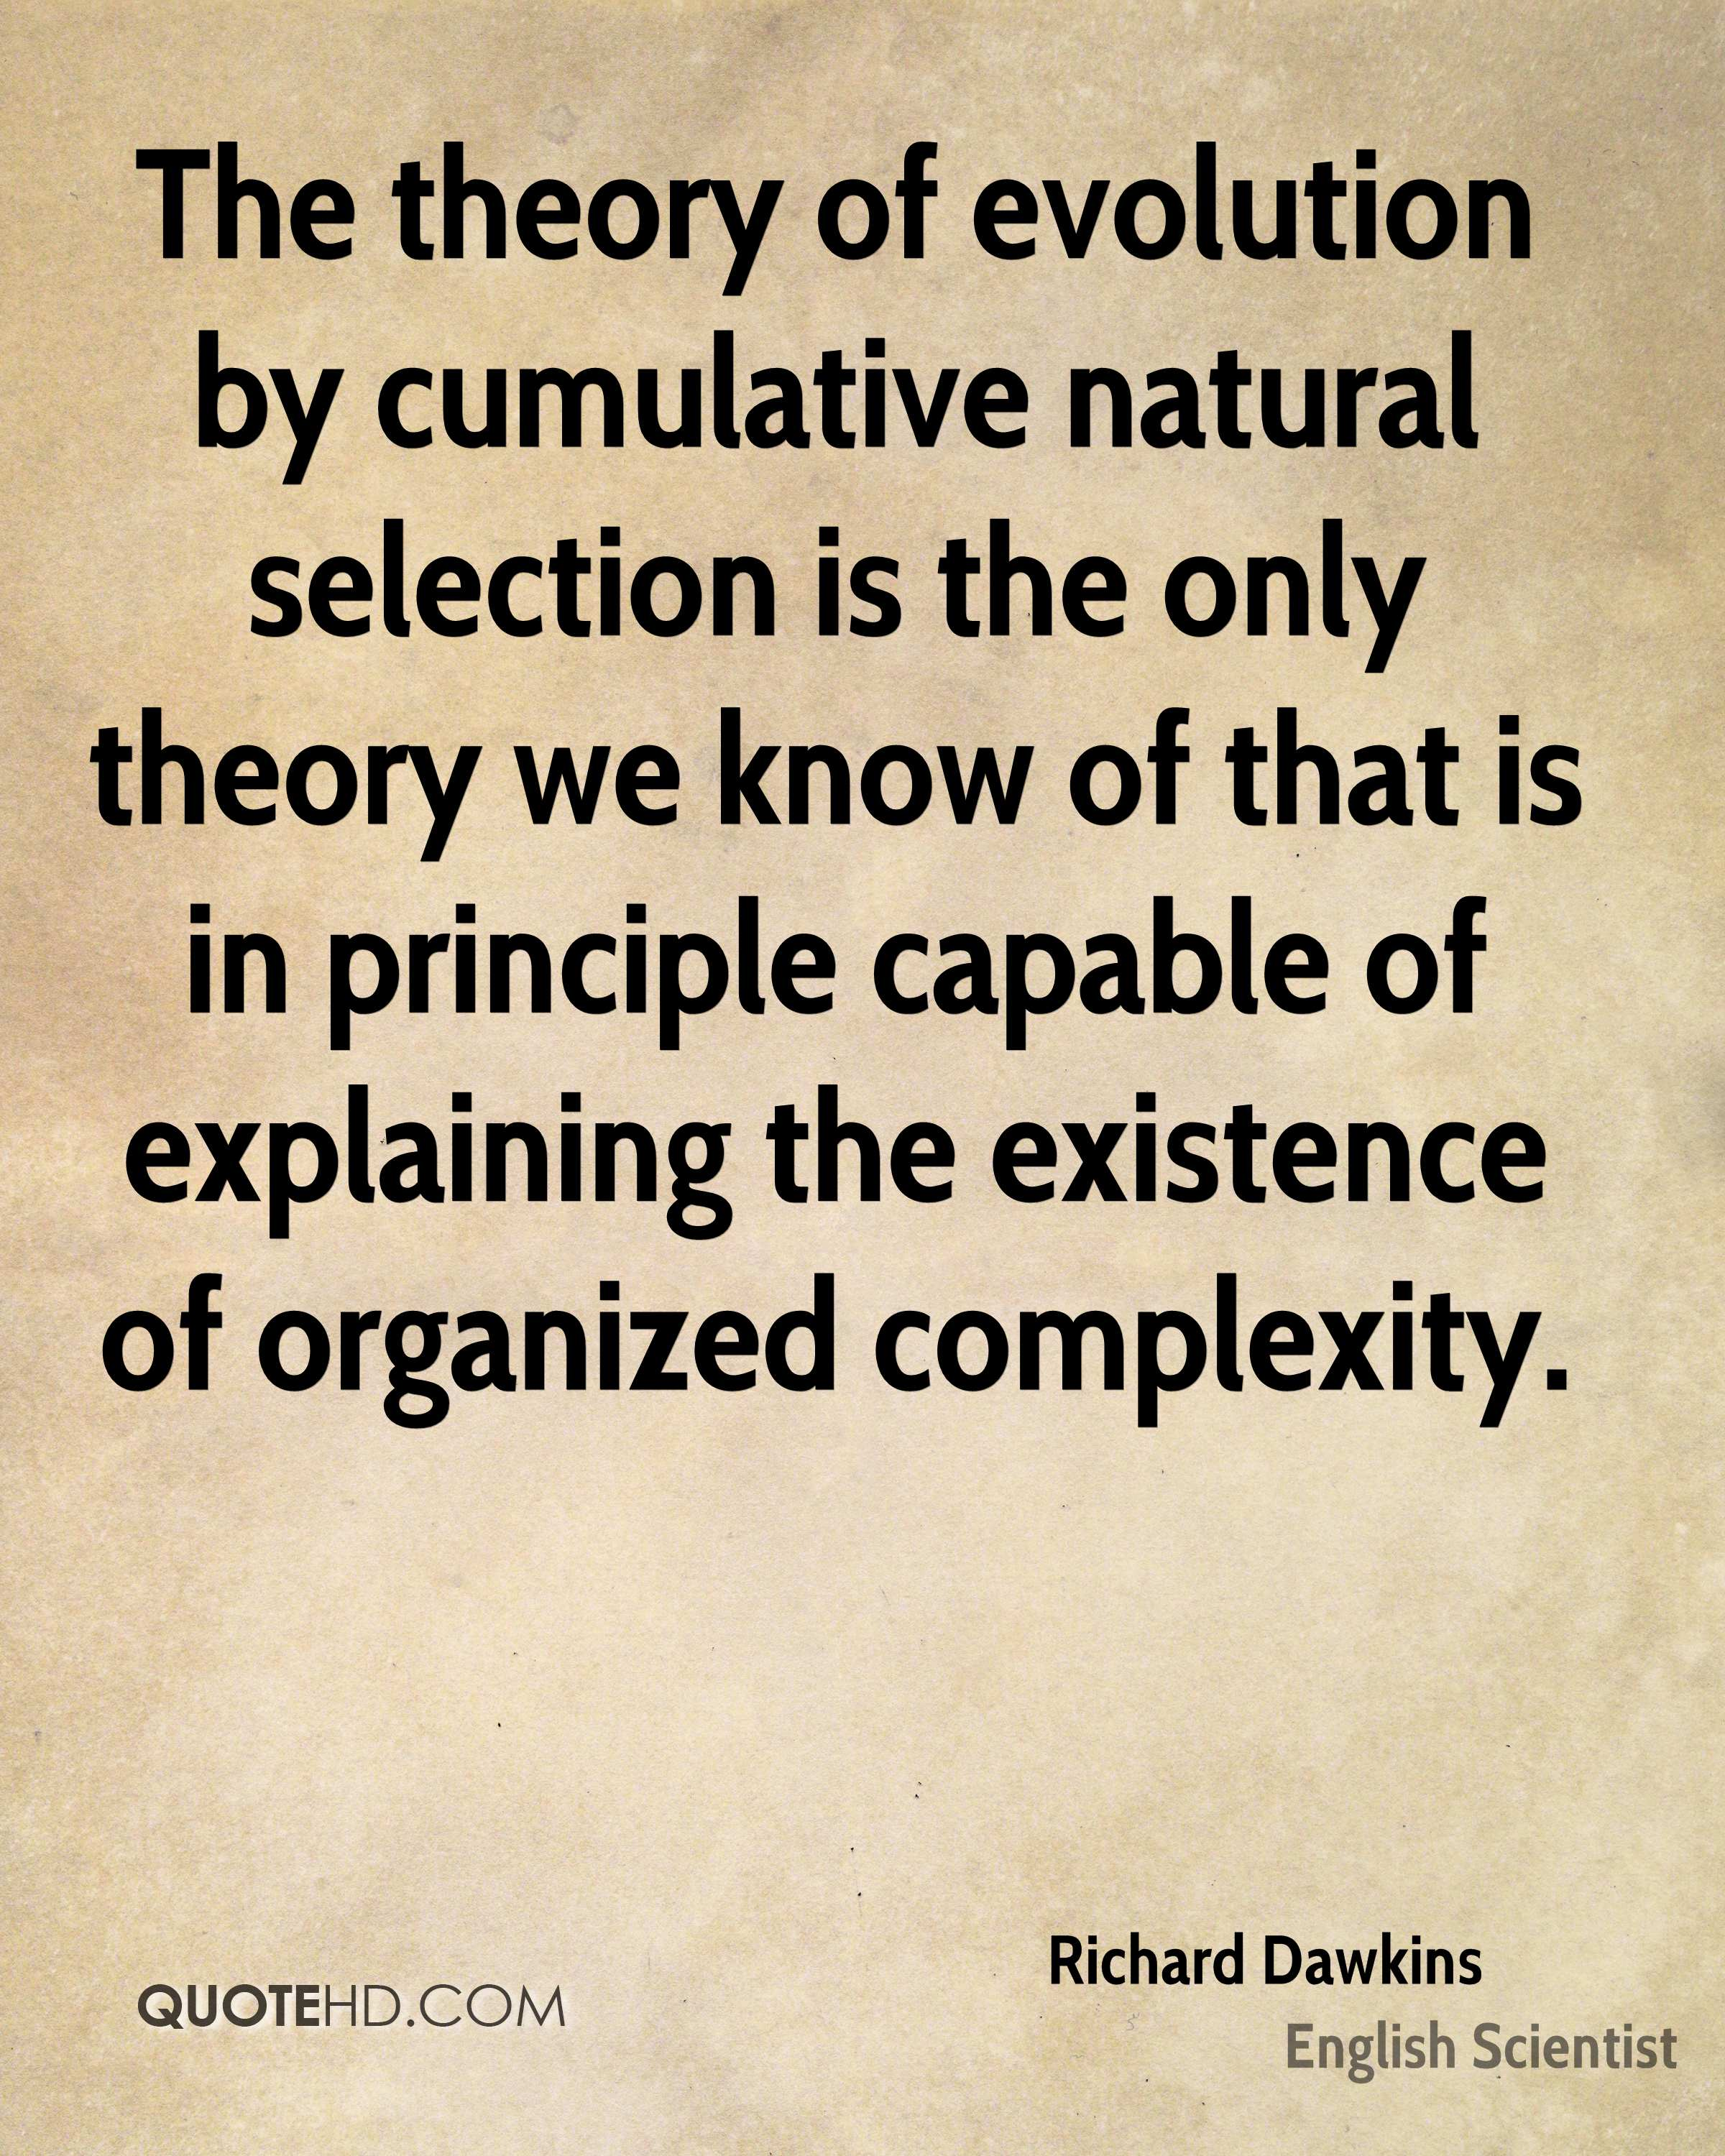 The theory of evolution by cumulative natural selection is the only theory we know of that is in principle capable of explaining the existence of organized complexity.